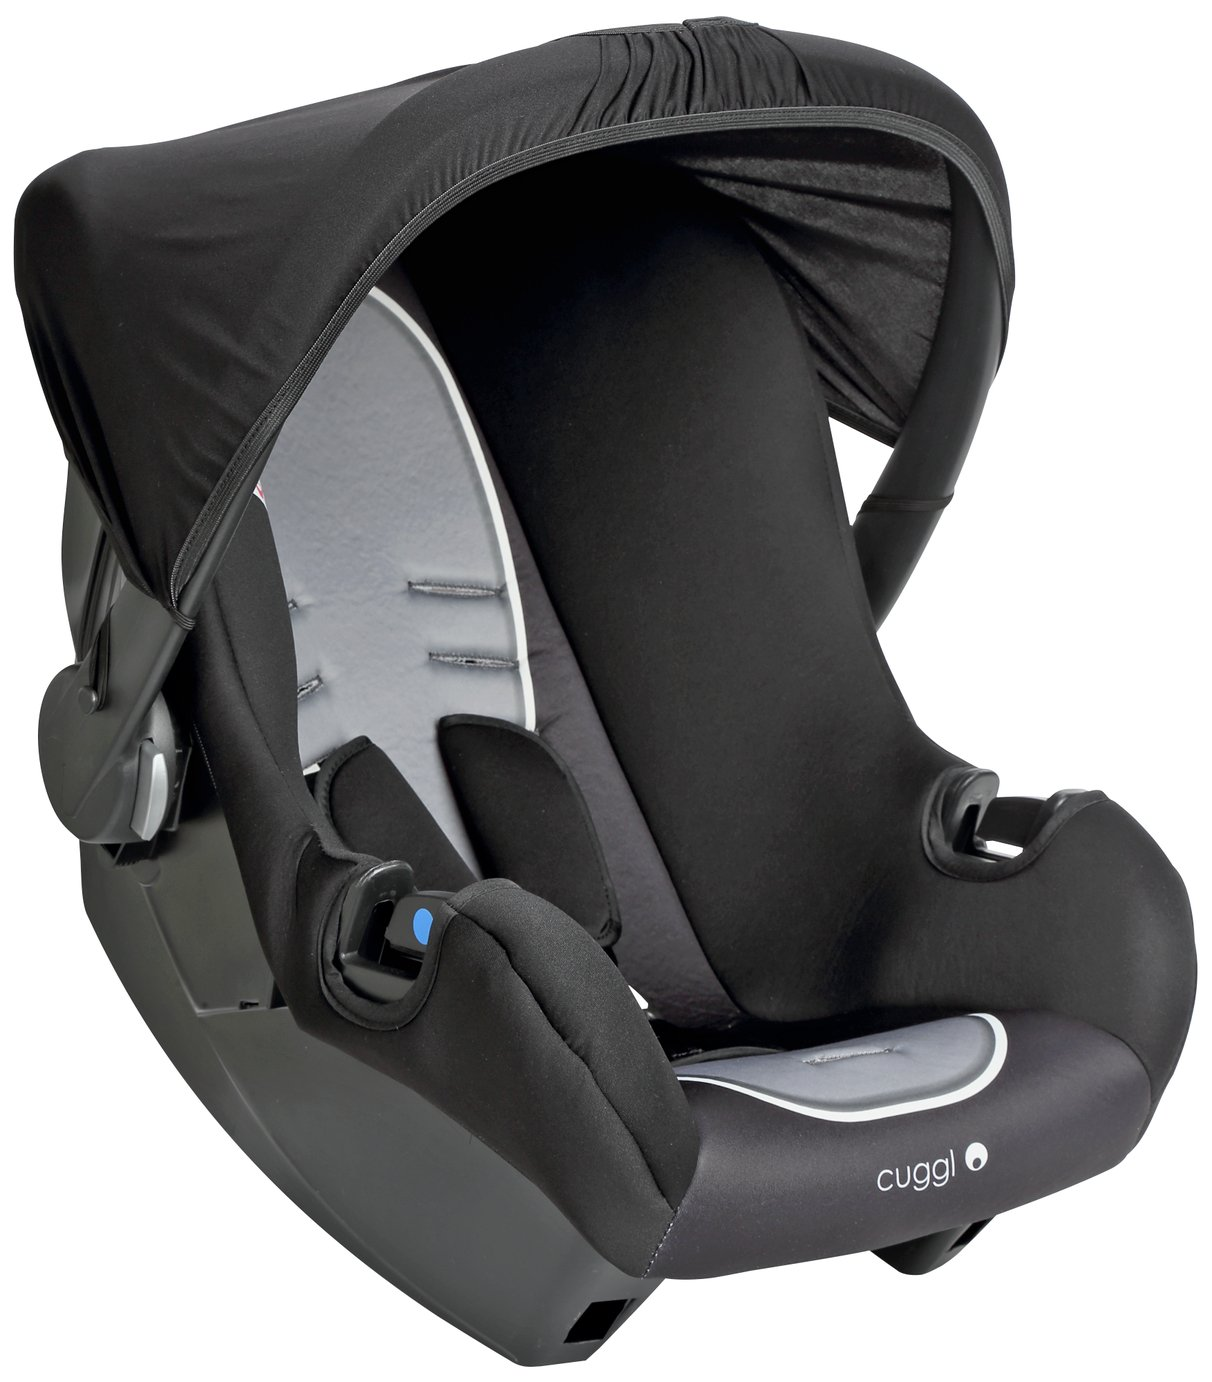 Cuggl Sparrow Group 0+ Baby Car Seat - Grey